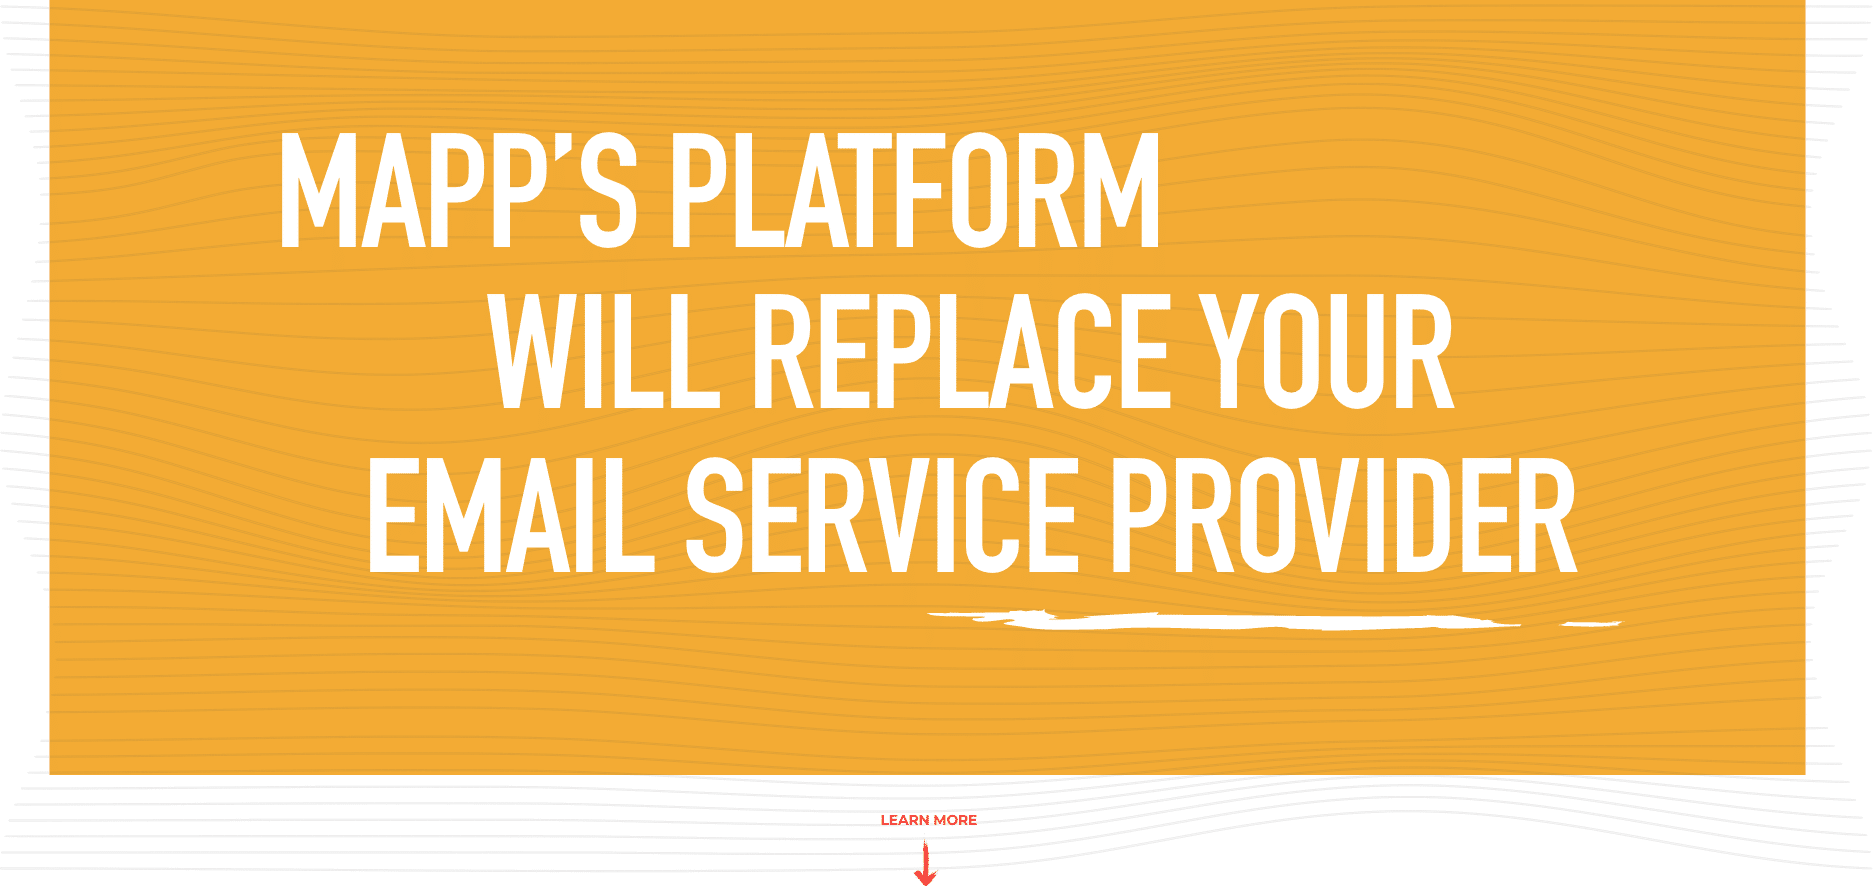 Mapp's Platform Will Replace Your Email Service Provider